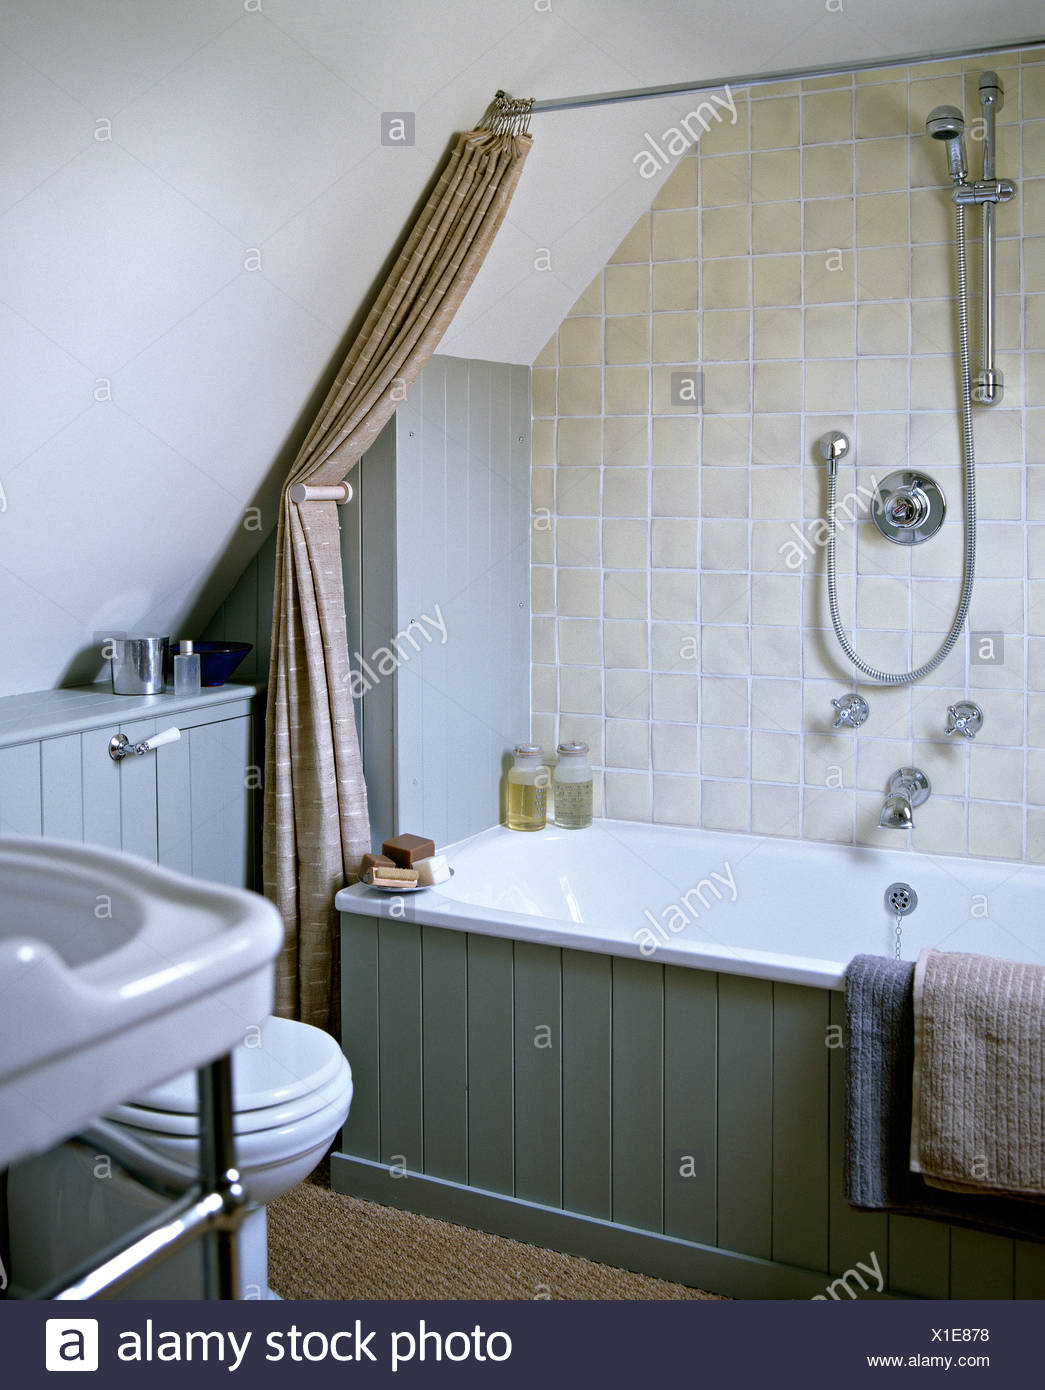 https www alamy com grey rustic tiles and chrome shower on wall above bath with tonguegroove paneling in country attic bedroom image276294348 html